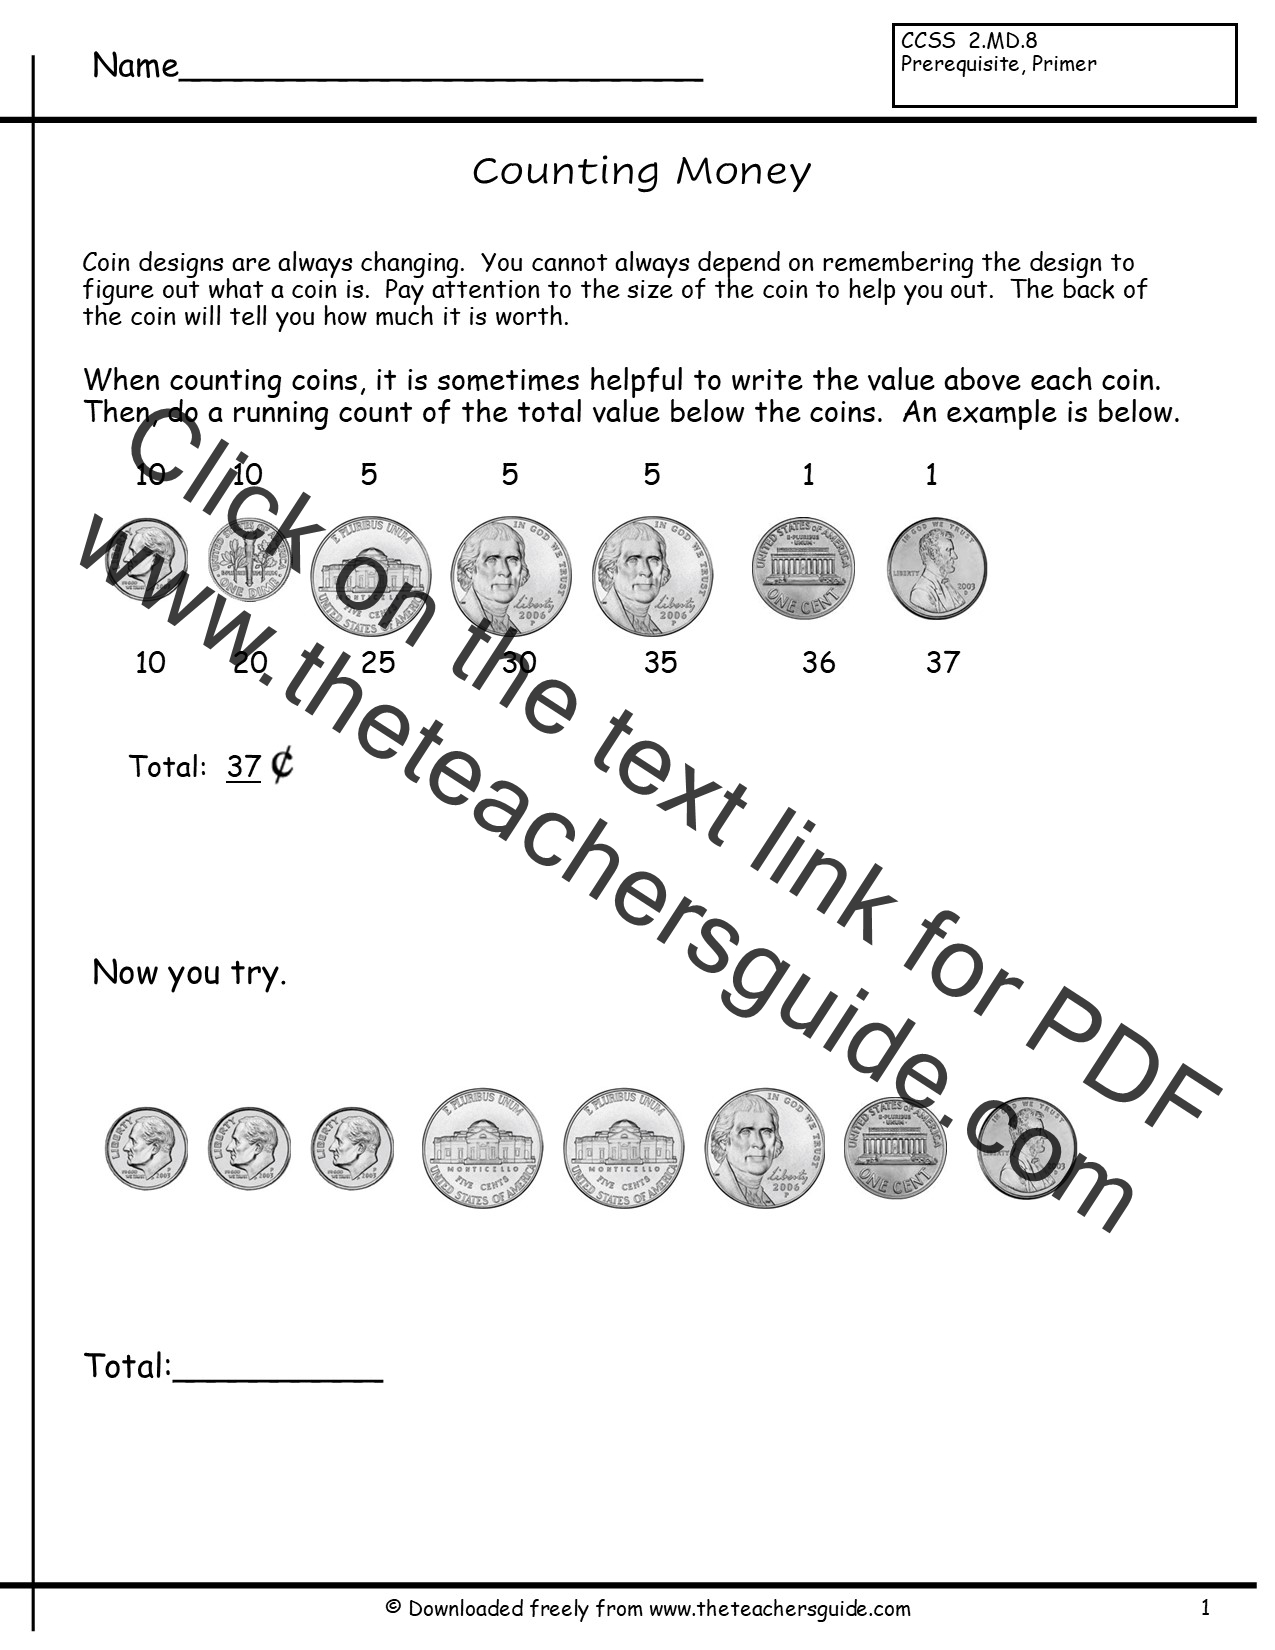 Counting Coins Worksheets from The Teachers Guide – Value of Coins Worksheet